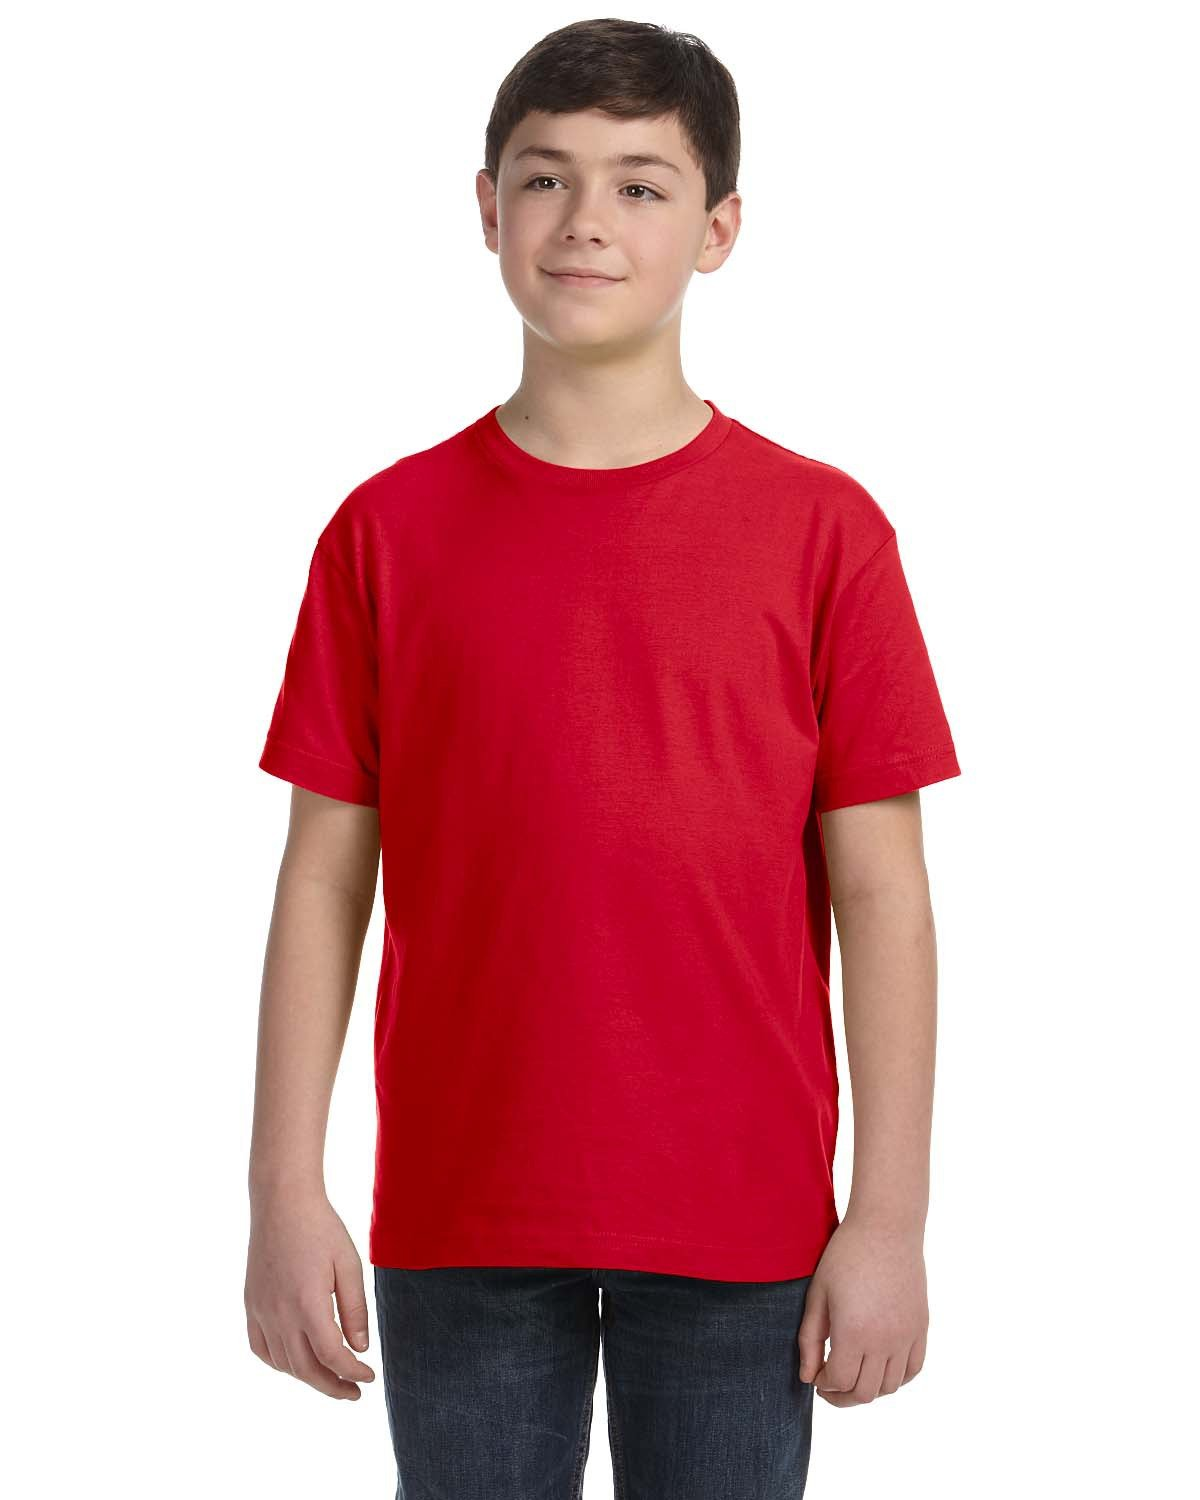 LAT Youth Fine Jersey T-Shirt RED